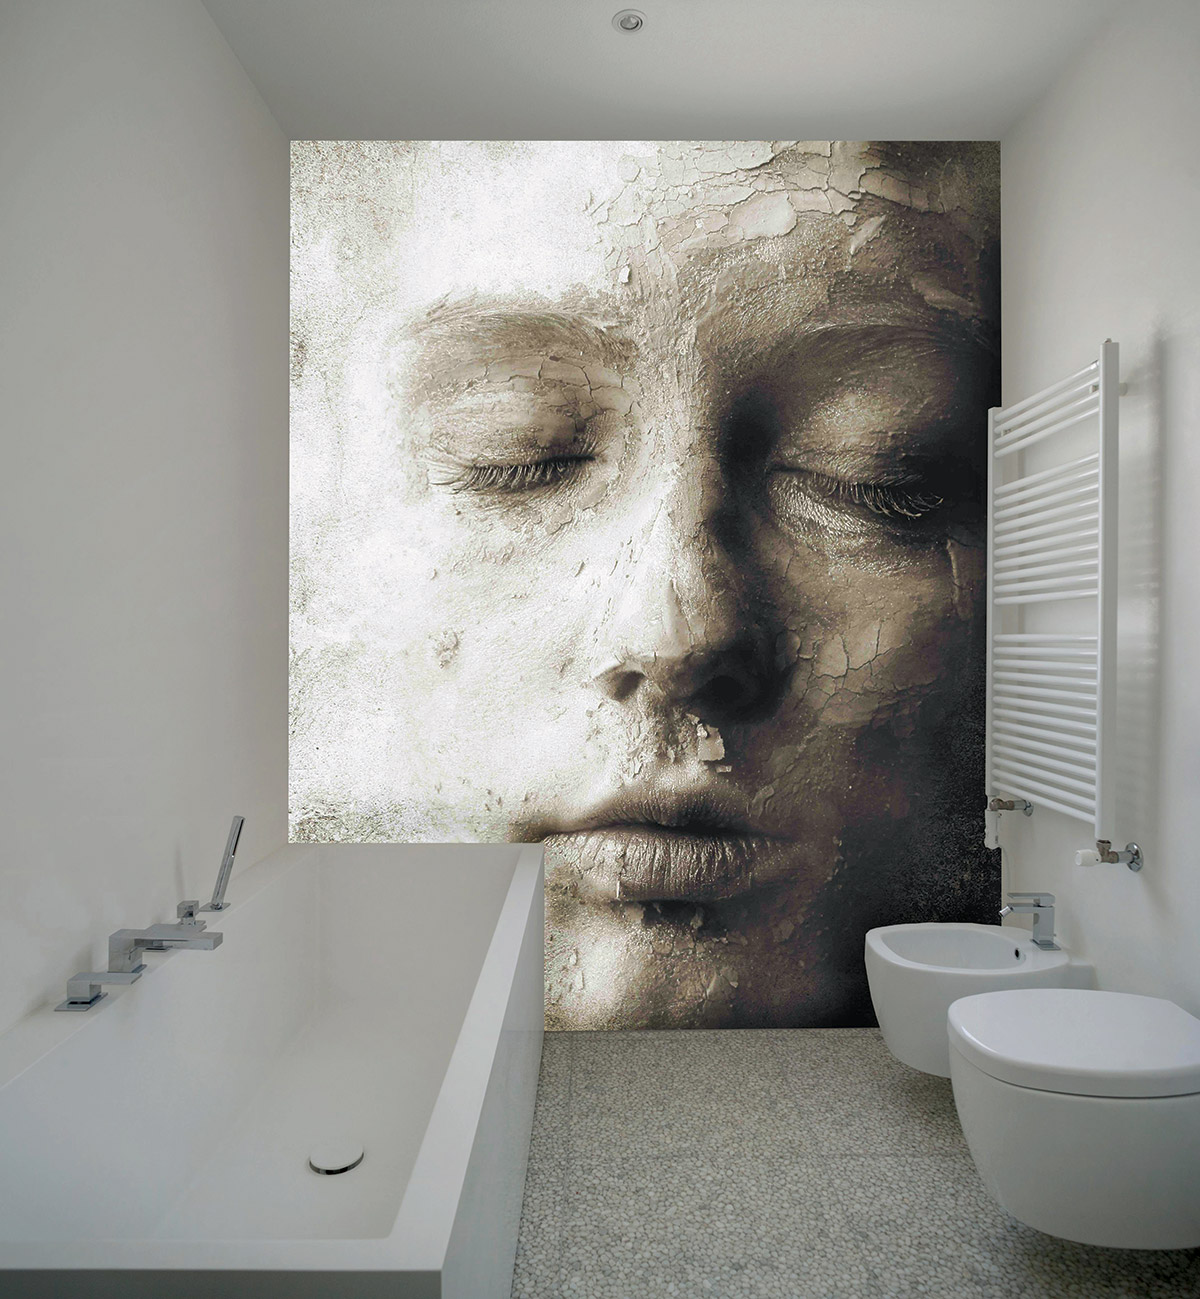 Wallpaper mural by the Italian firm Creativespace